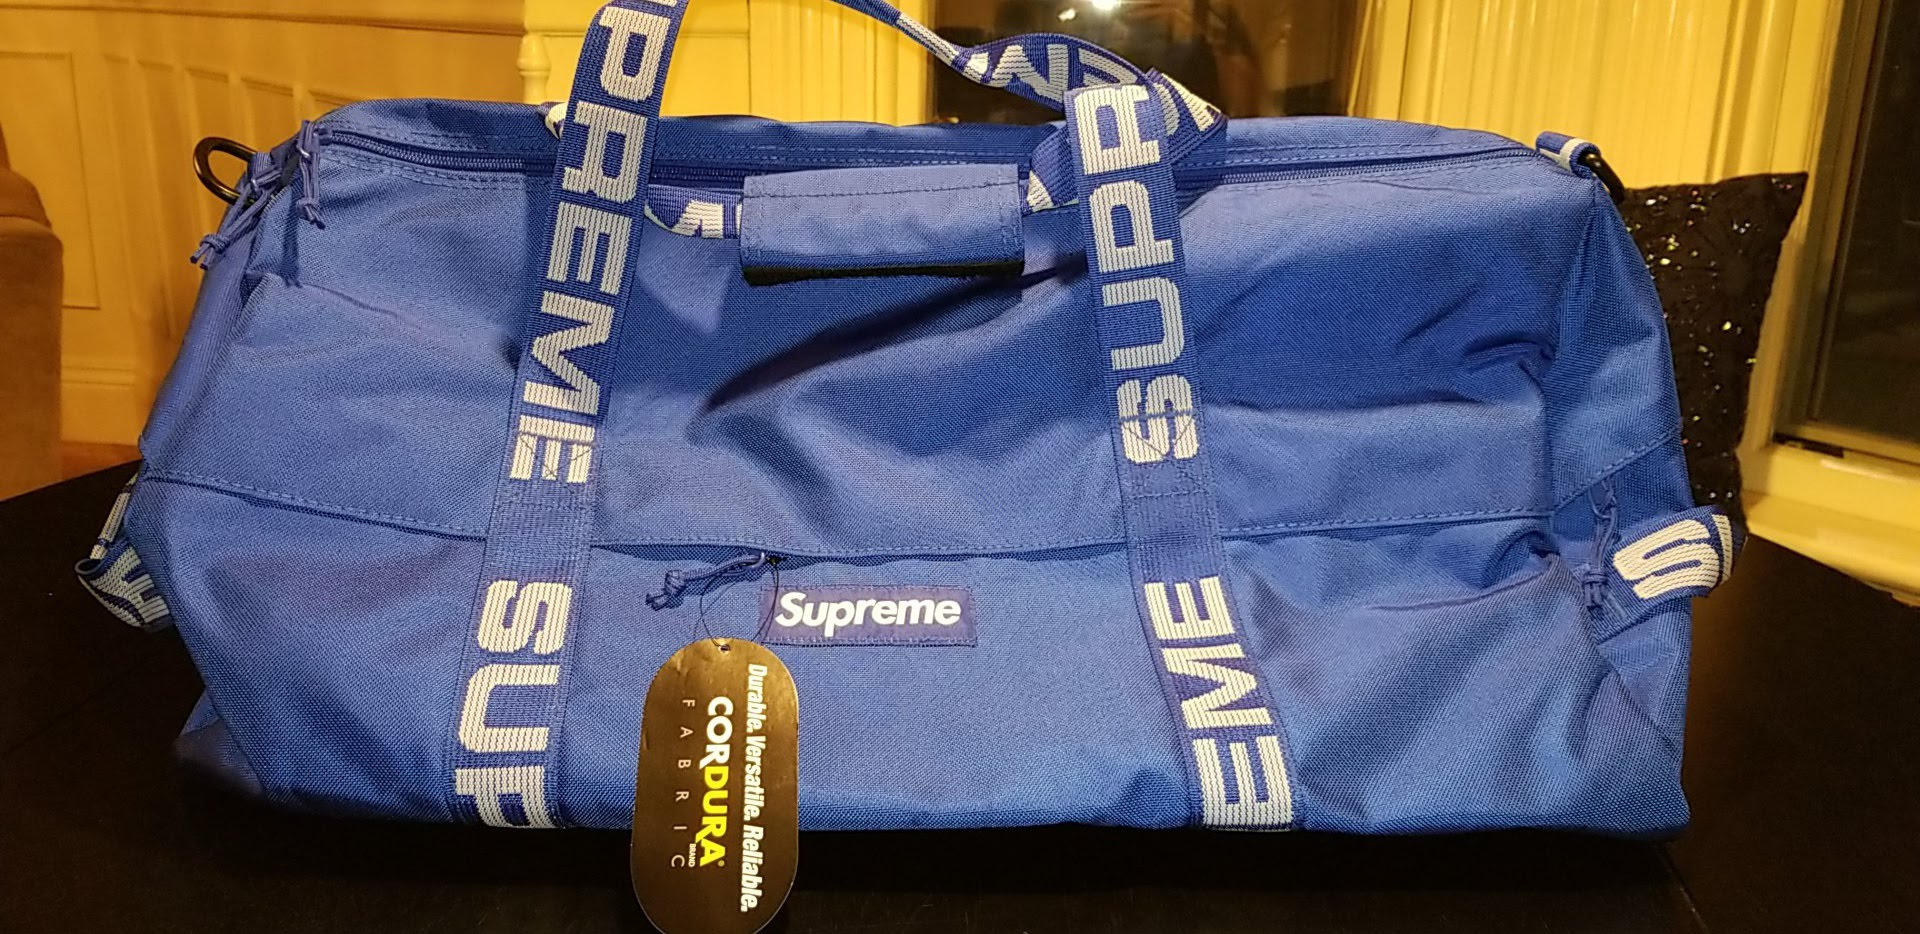 Supreme Supreme Duffle Bag SS18 Royal Blue Size one size - Bags   Luggage  for Sale - Grailed b682c9c3380ac